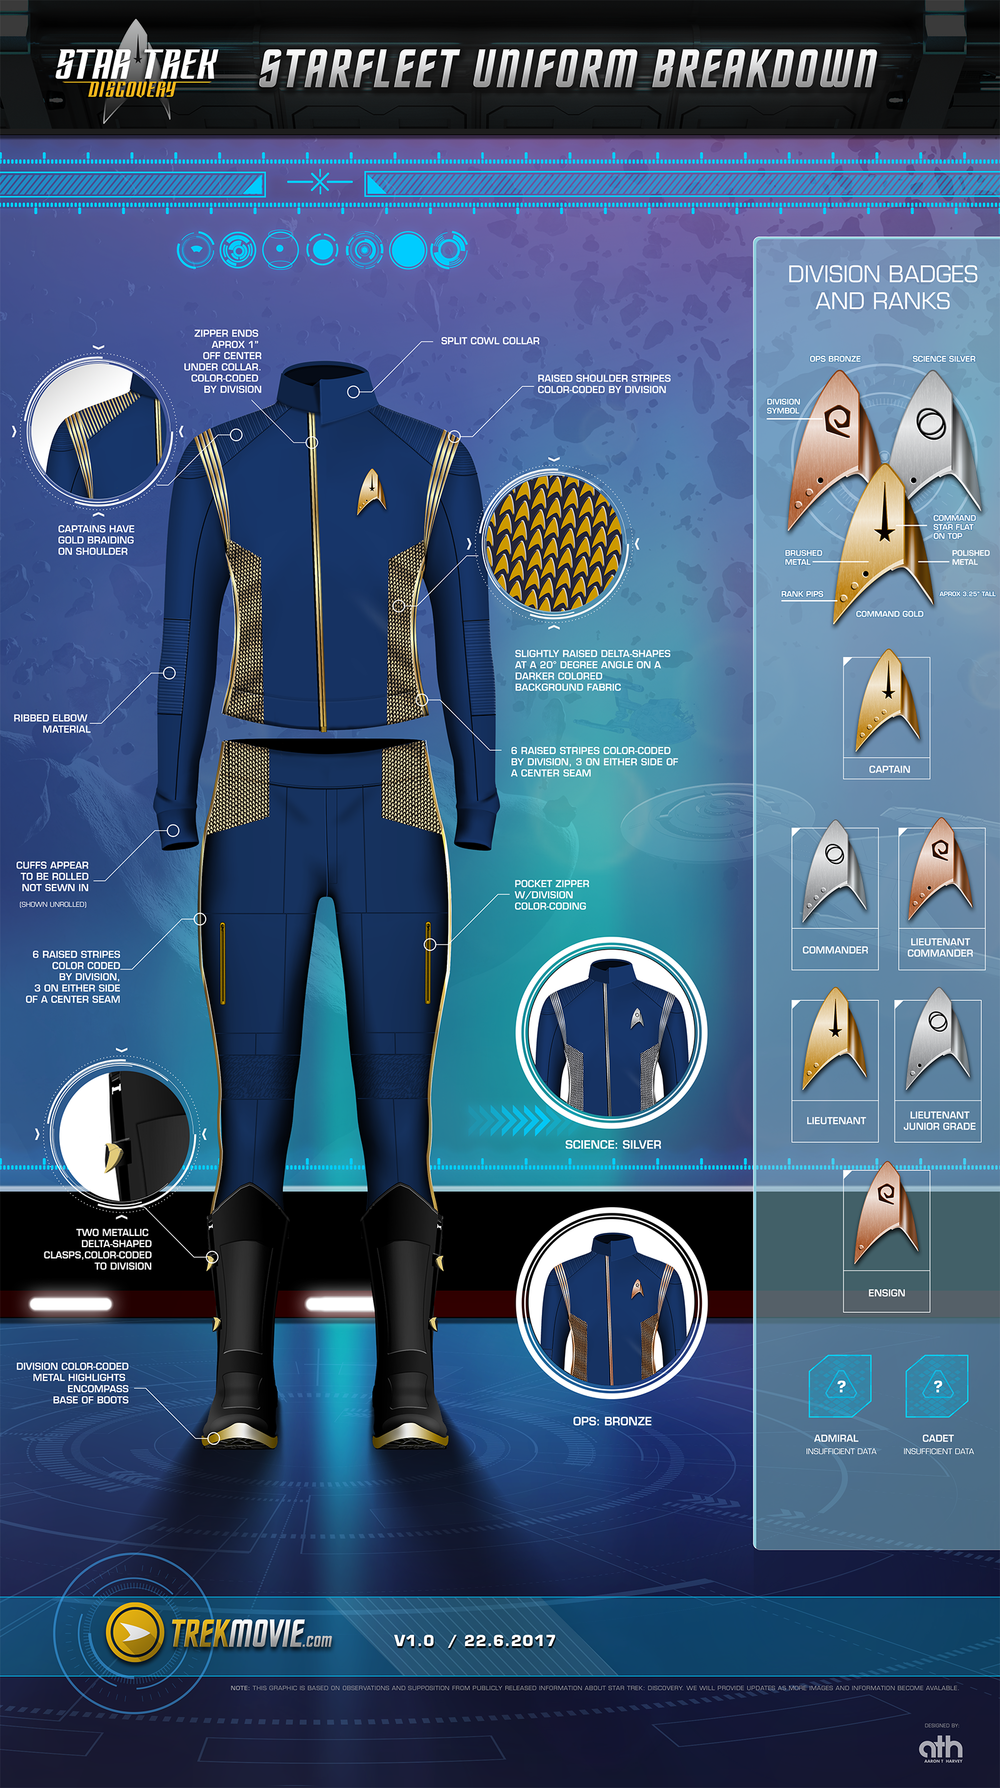 A Close-Up Look At 'Star Trek: Discovery' Uniforms [INFOGRAPHIC] from https://trekmovie.com/2017/06/22/a-close-up-look-at-star-trek-discovery-uniforms-infographic/